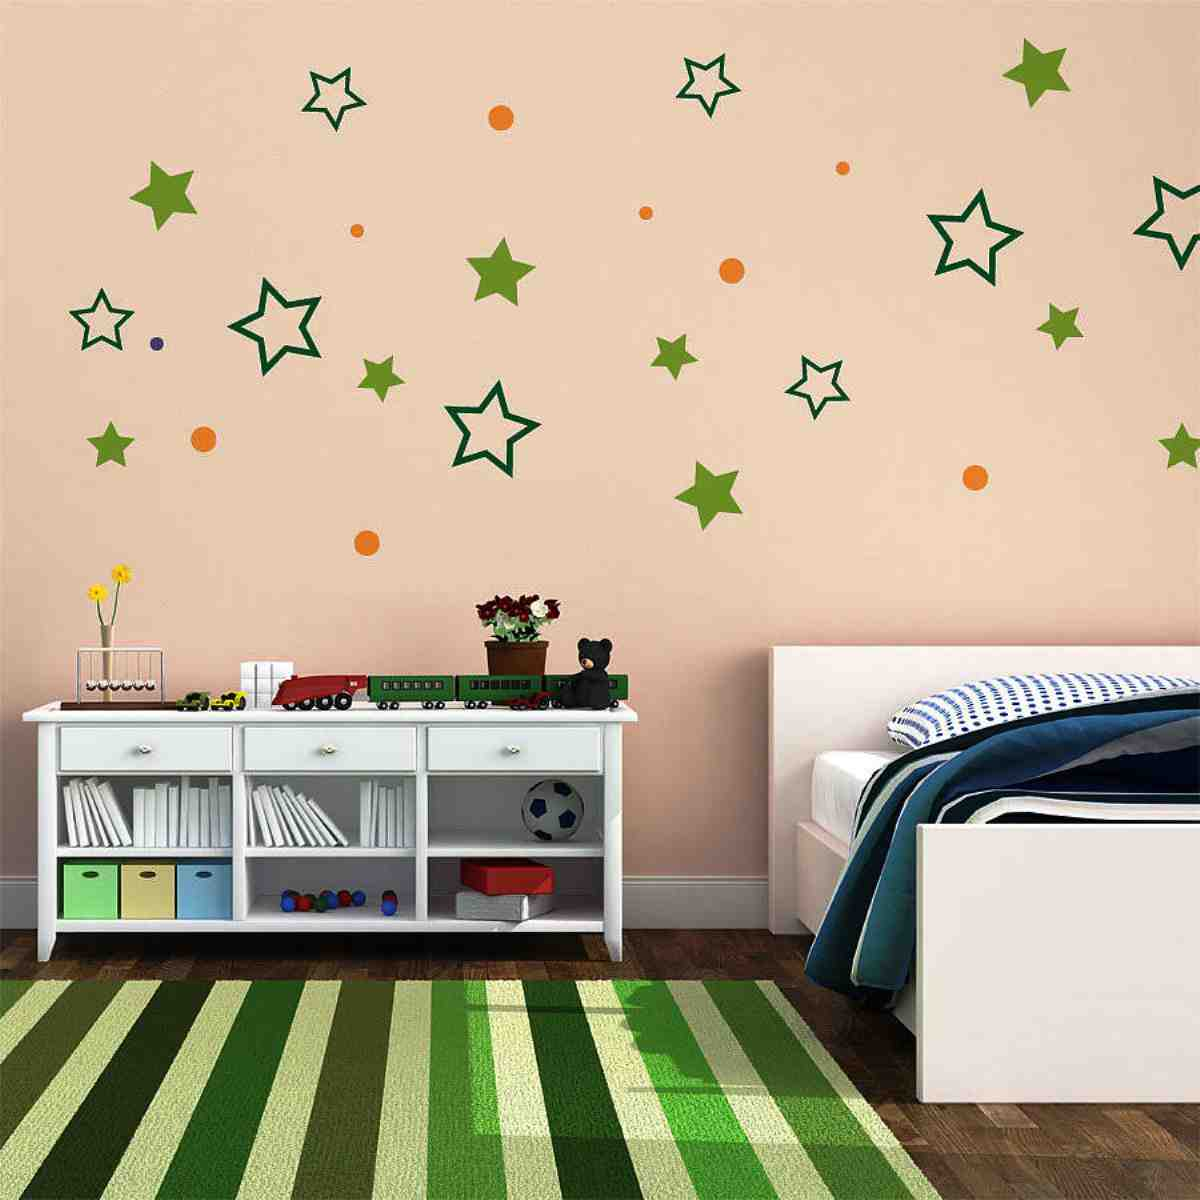 Bedroom Wall Decorating Ideas: Diy Wall Decor Ideas For Bedroom